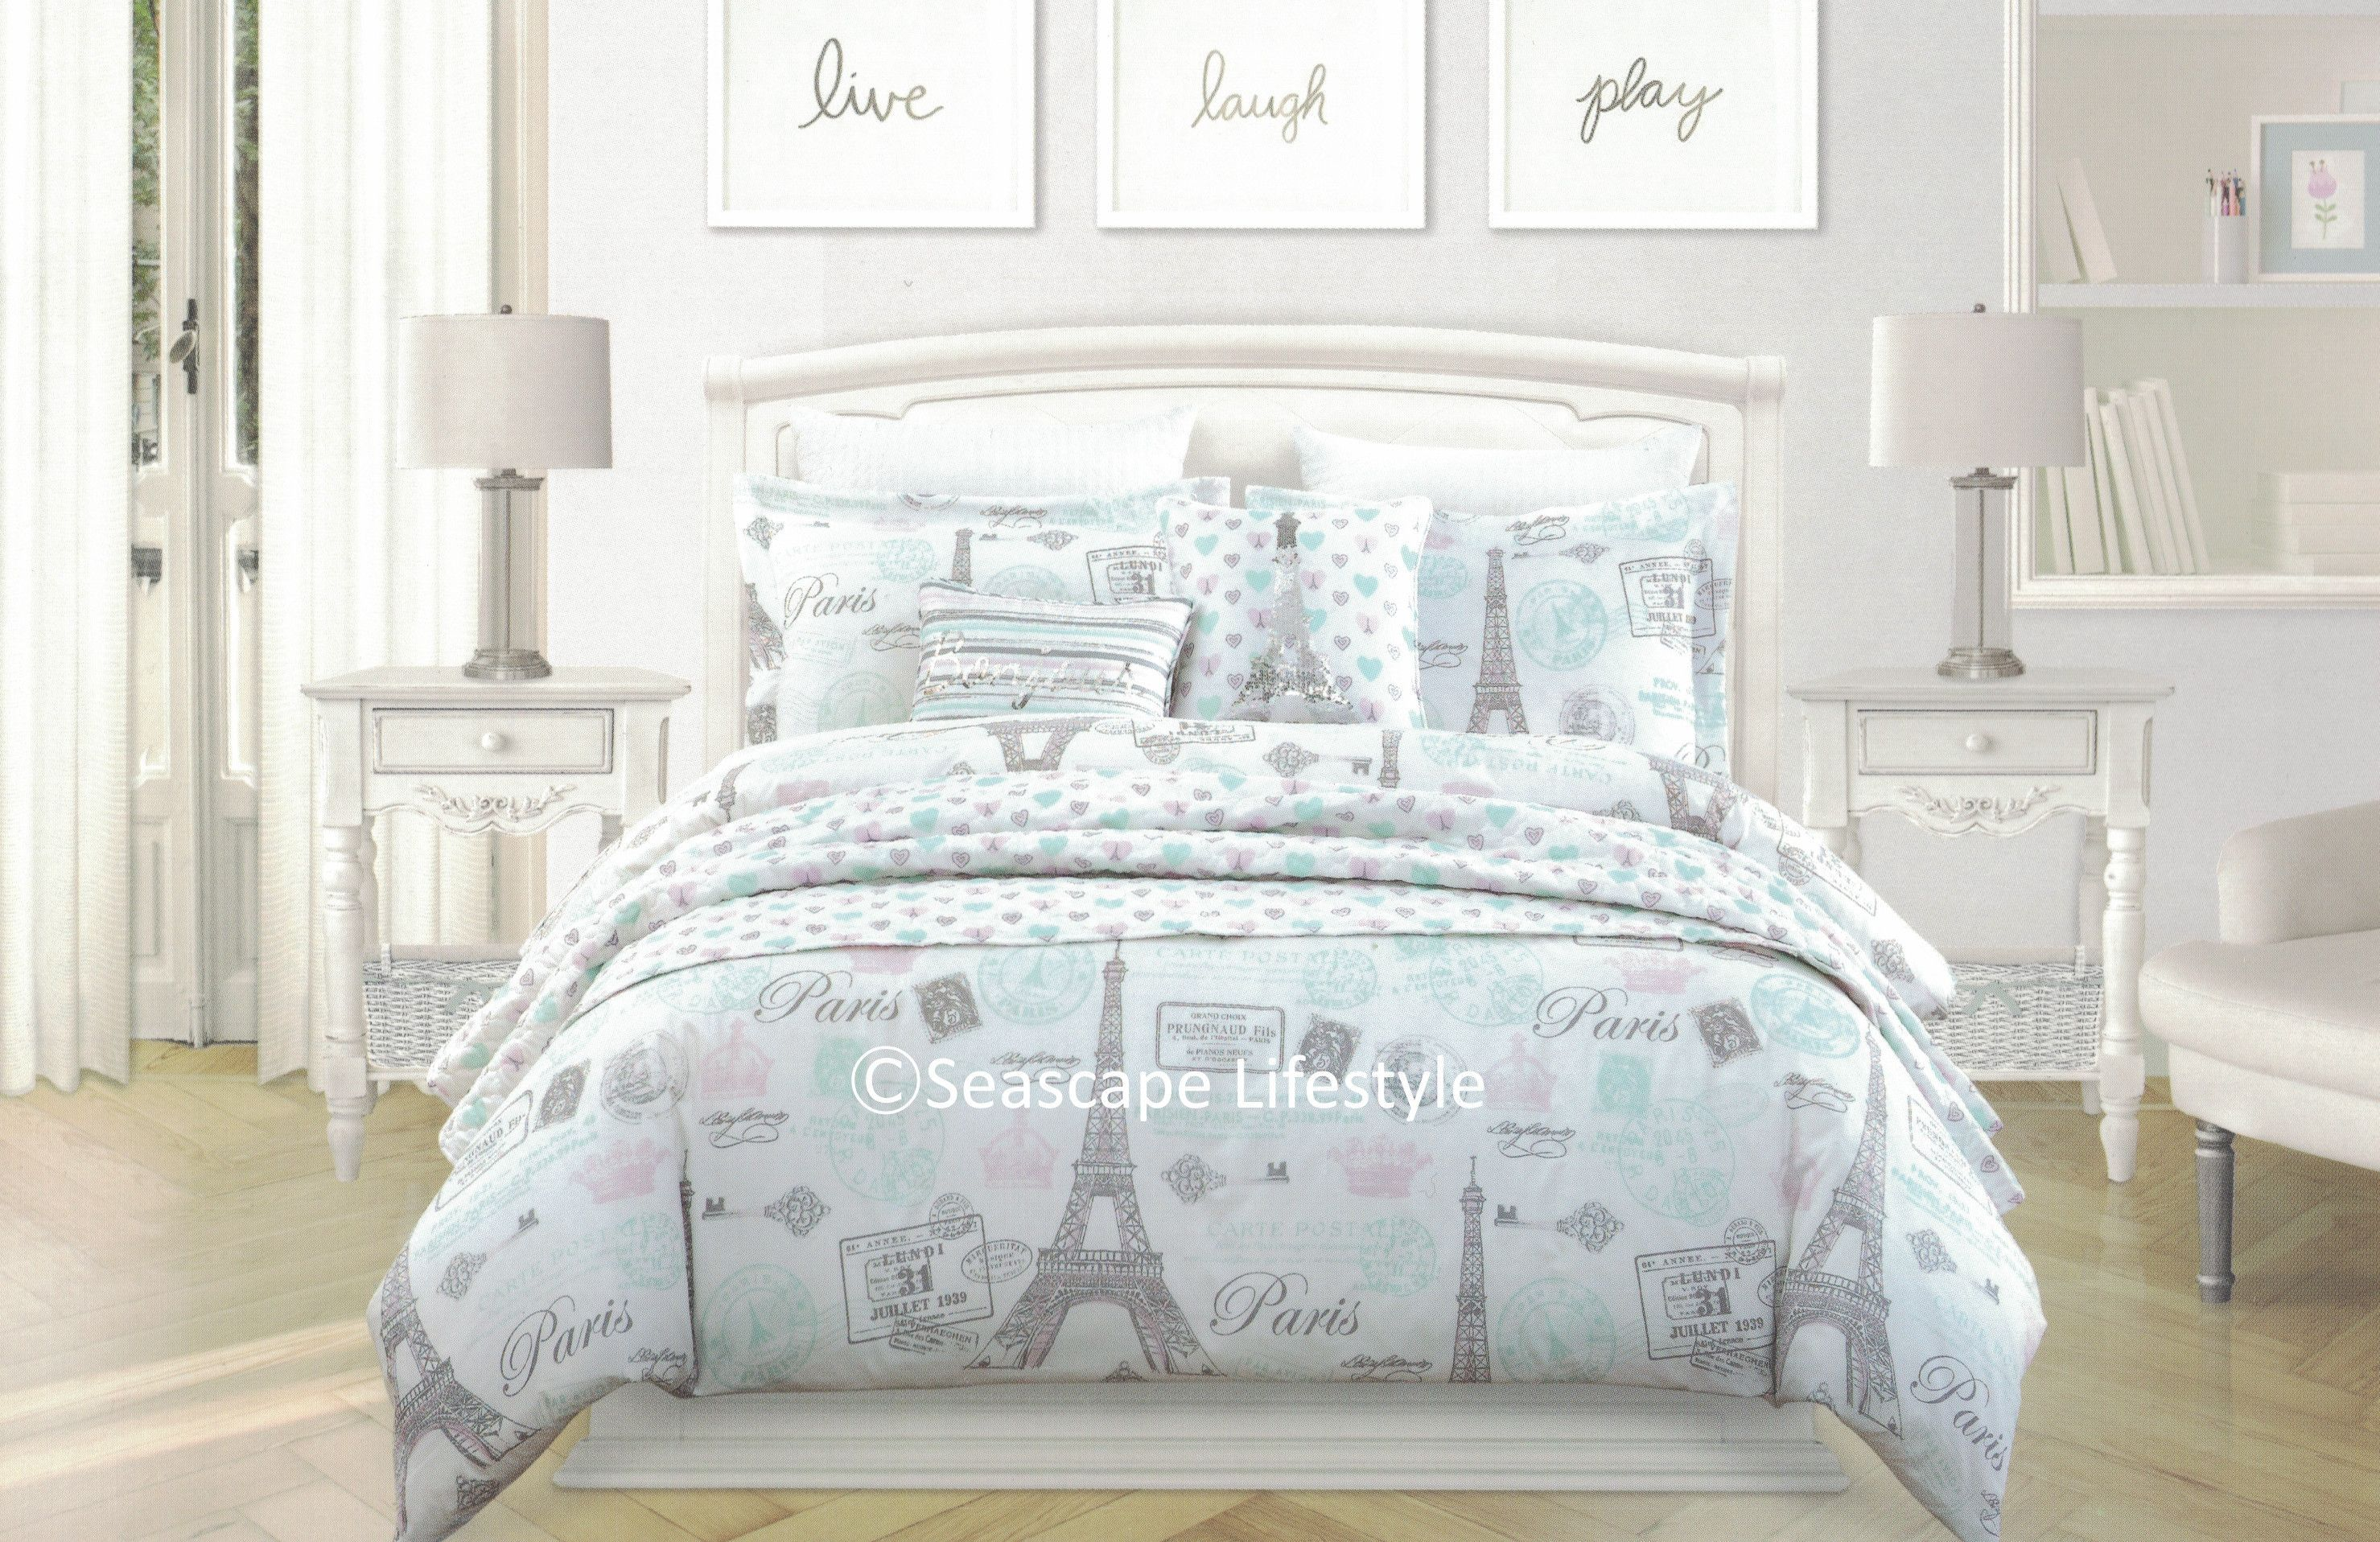 ❤ I LOVE PARIS ❤ Twin forter Set with Coverlet ❤ 5 pc